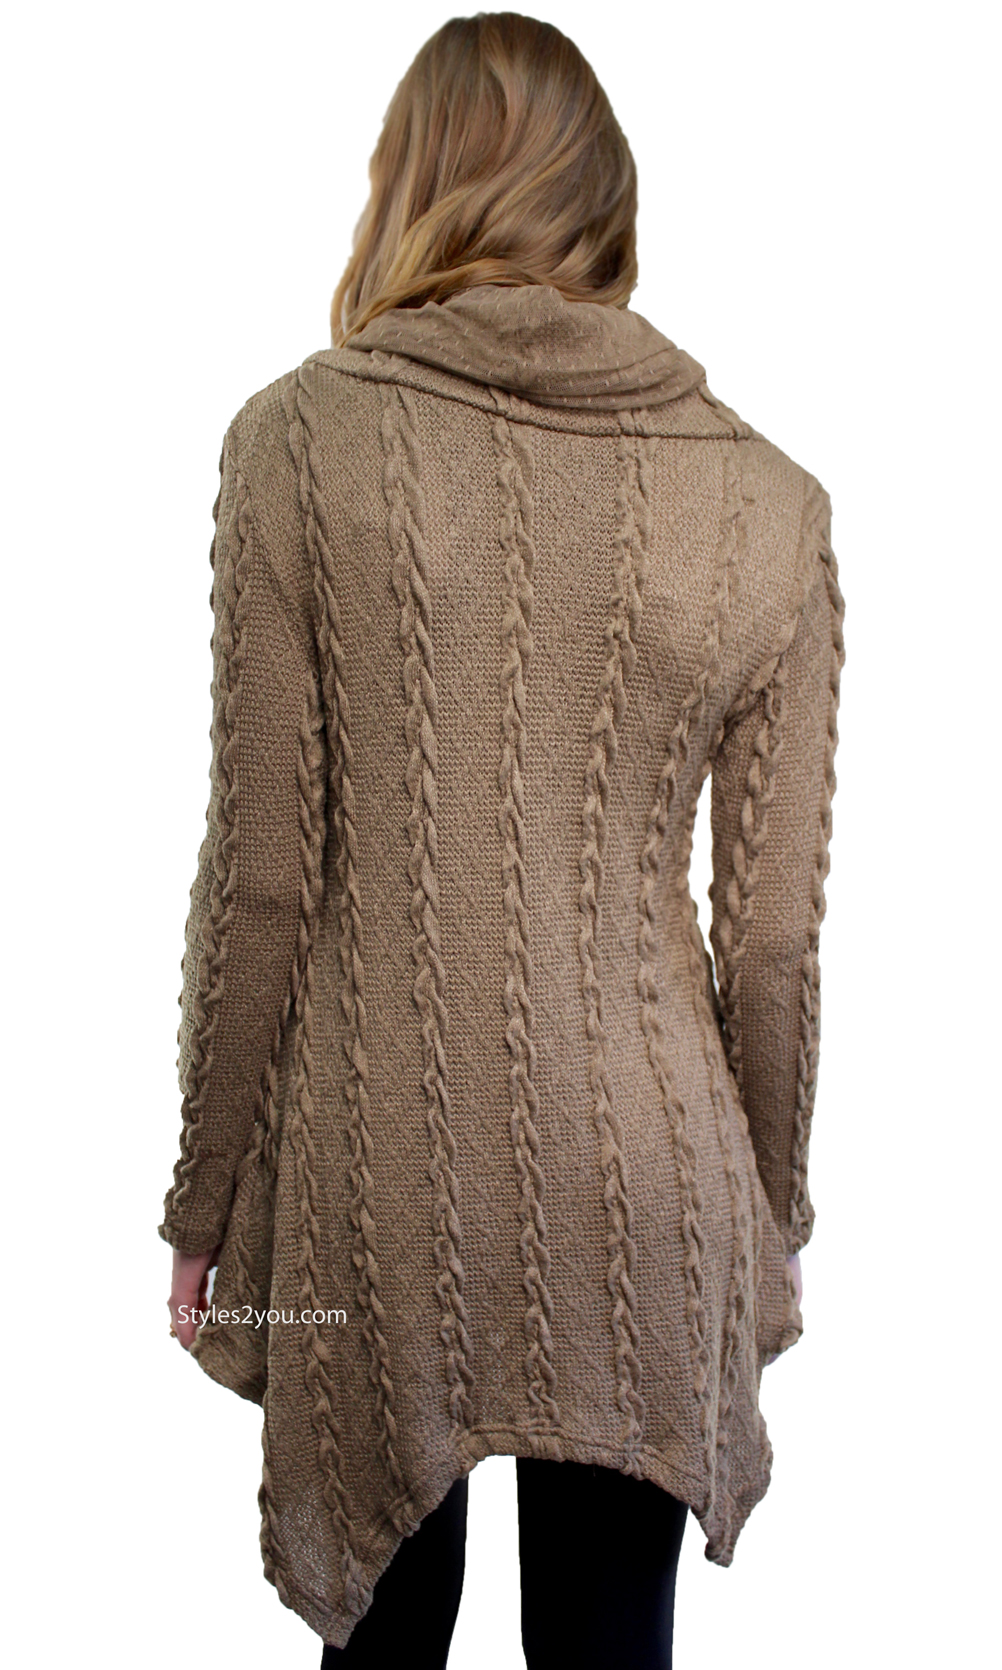 Tegan Ladies Cable Knit Sweater Shirt Dress In Brown [ALKS10962BR ...